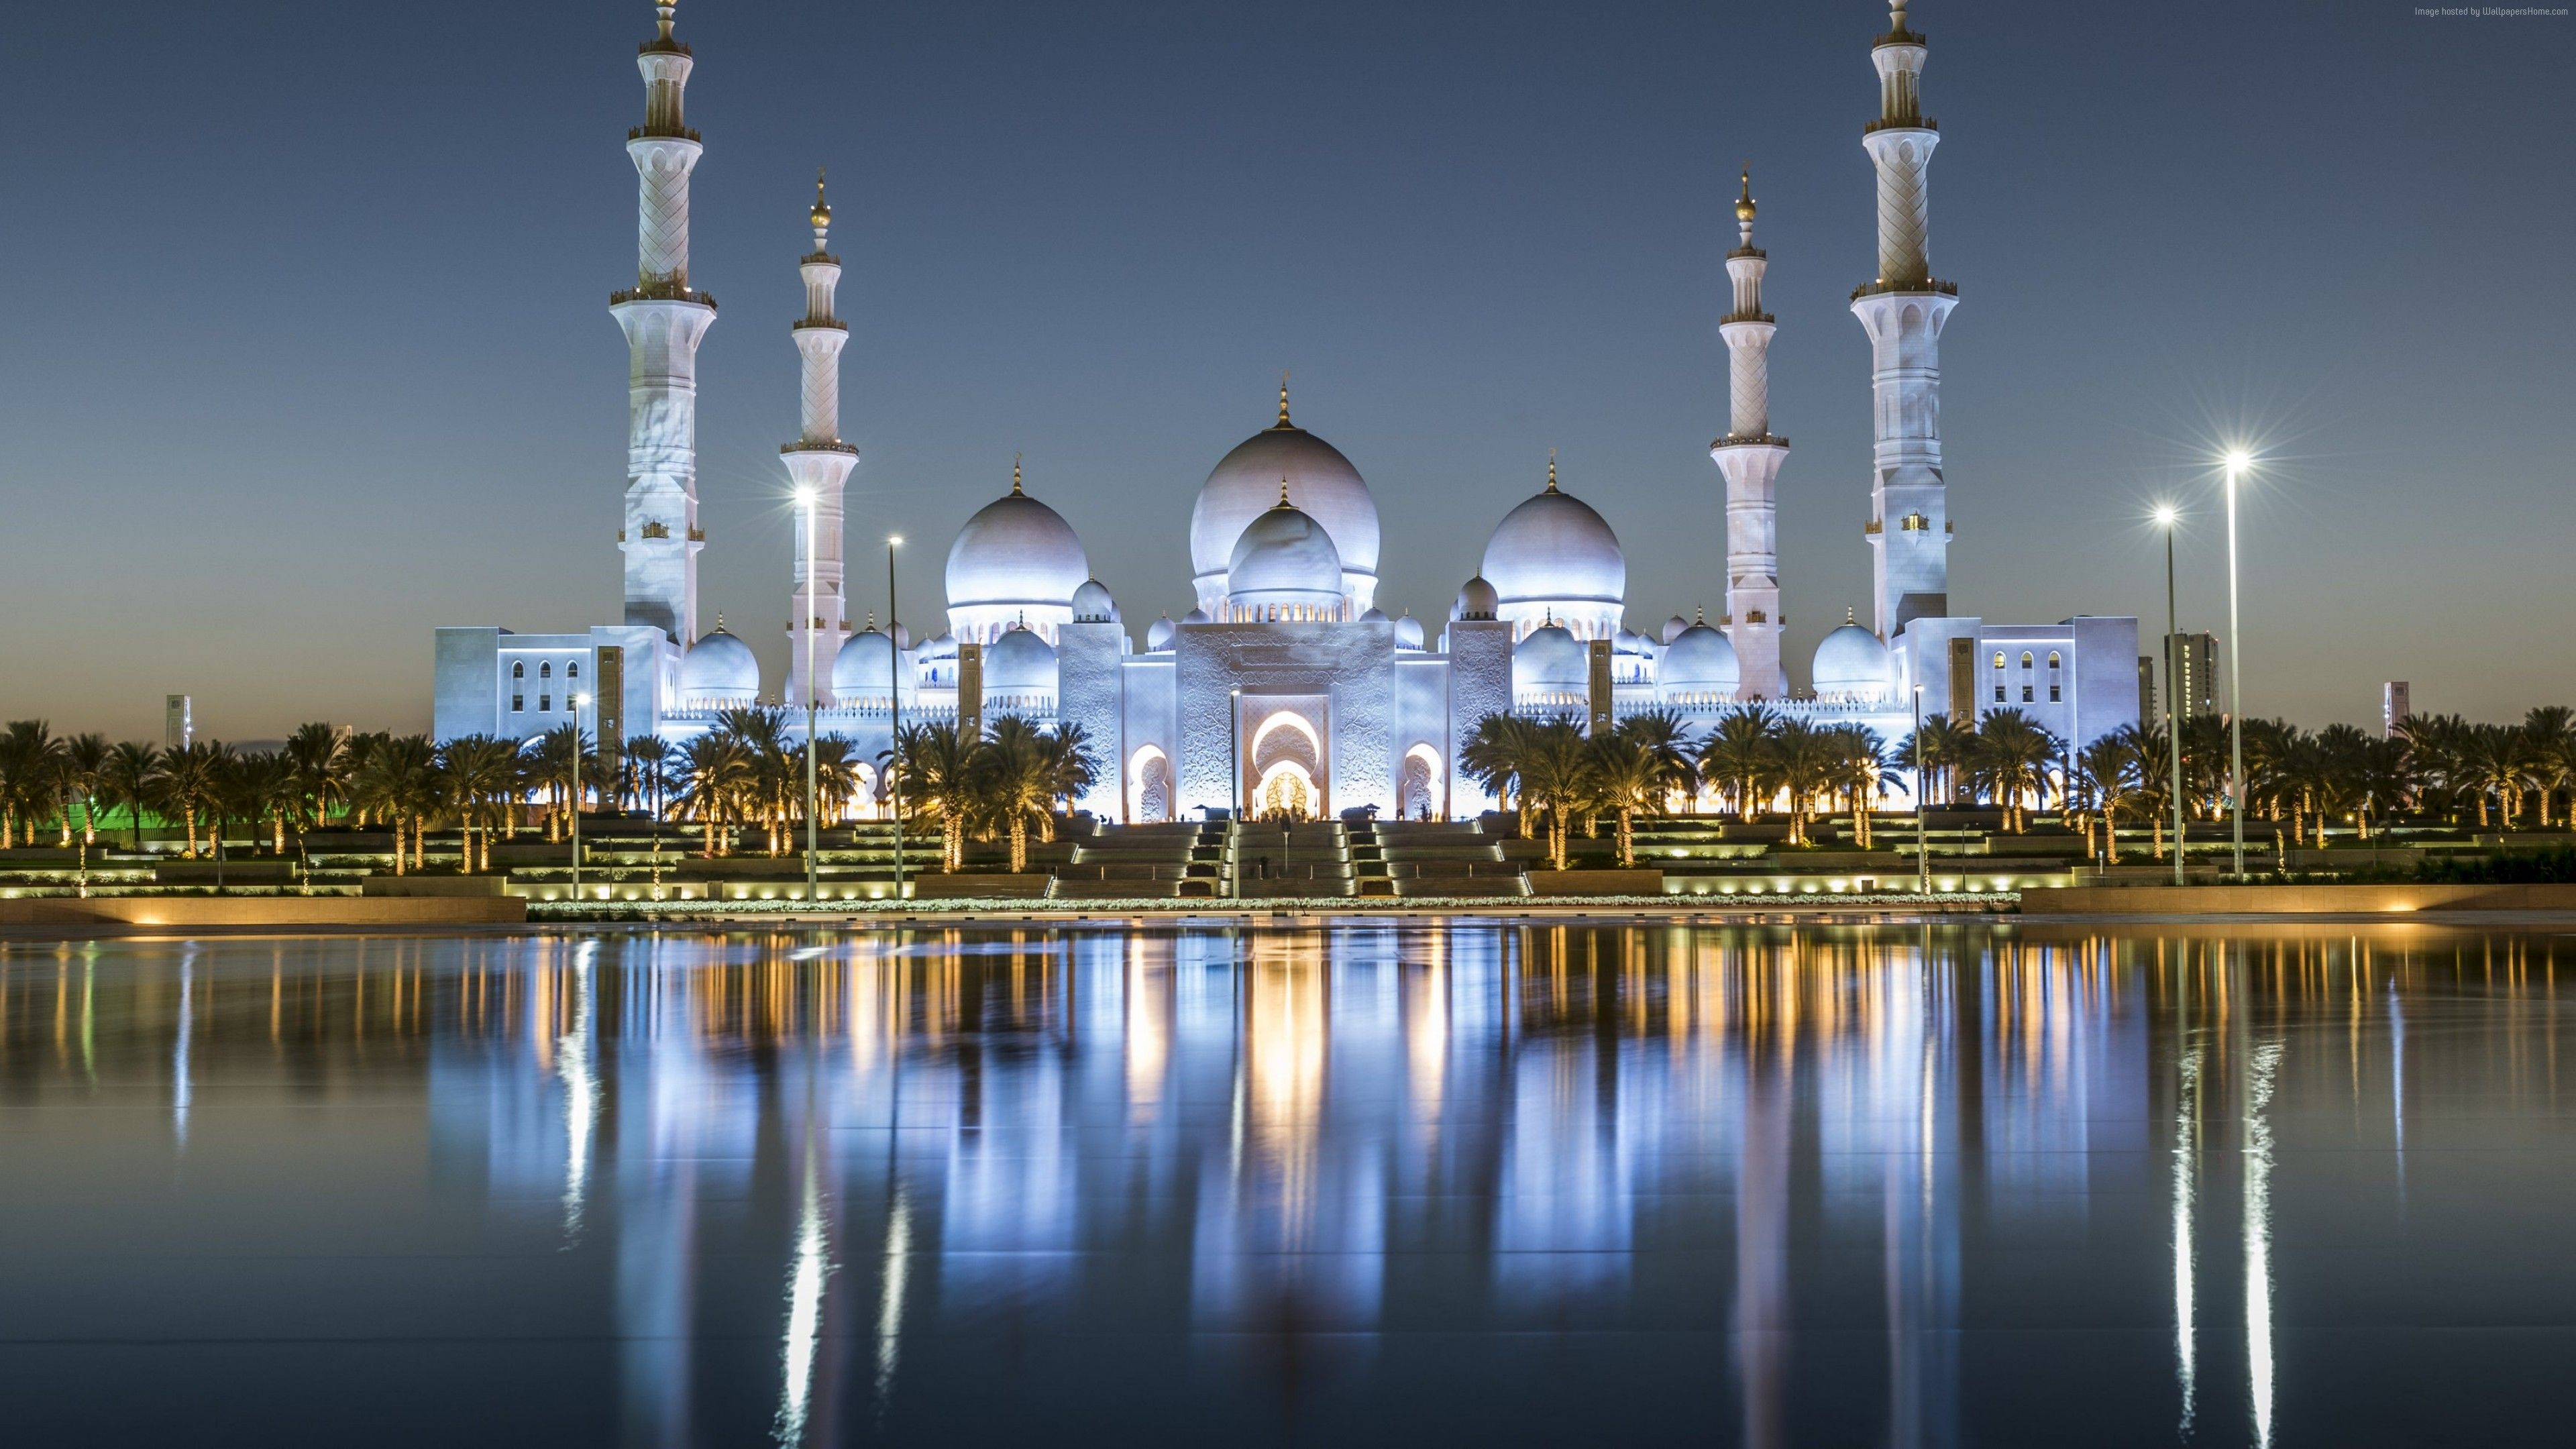 Sheikh Zayed Mosque Https Livewallpaperswide Com Cities Sheikh Zayed Mosque 10273 4k Abu Dhabi Sheikh Zayed Mos Mosque Sheikh Zayed Grand Mosque Dubai City